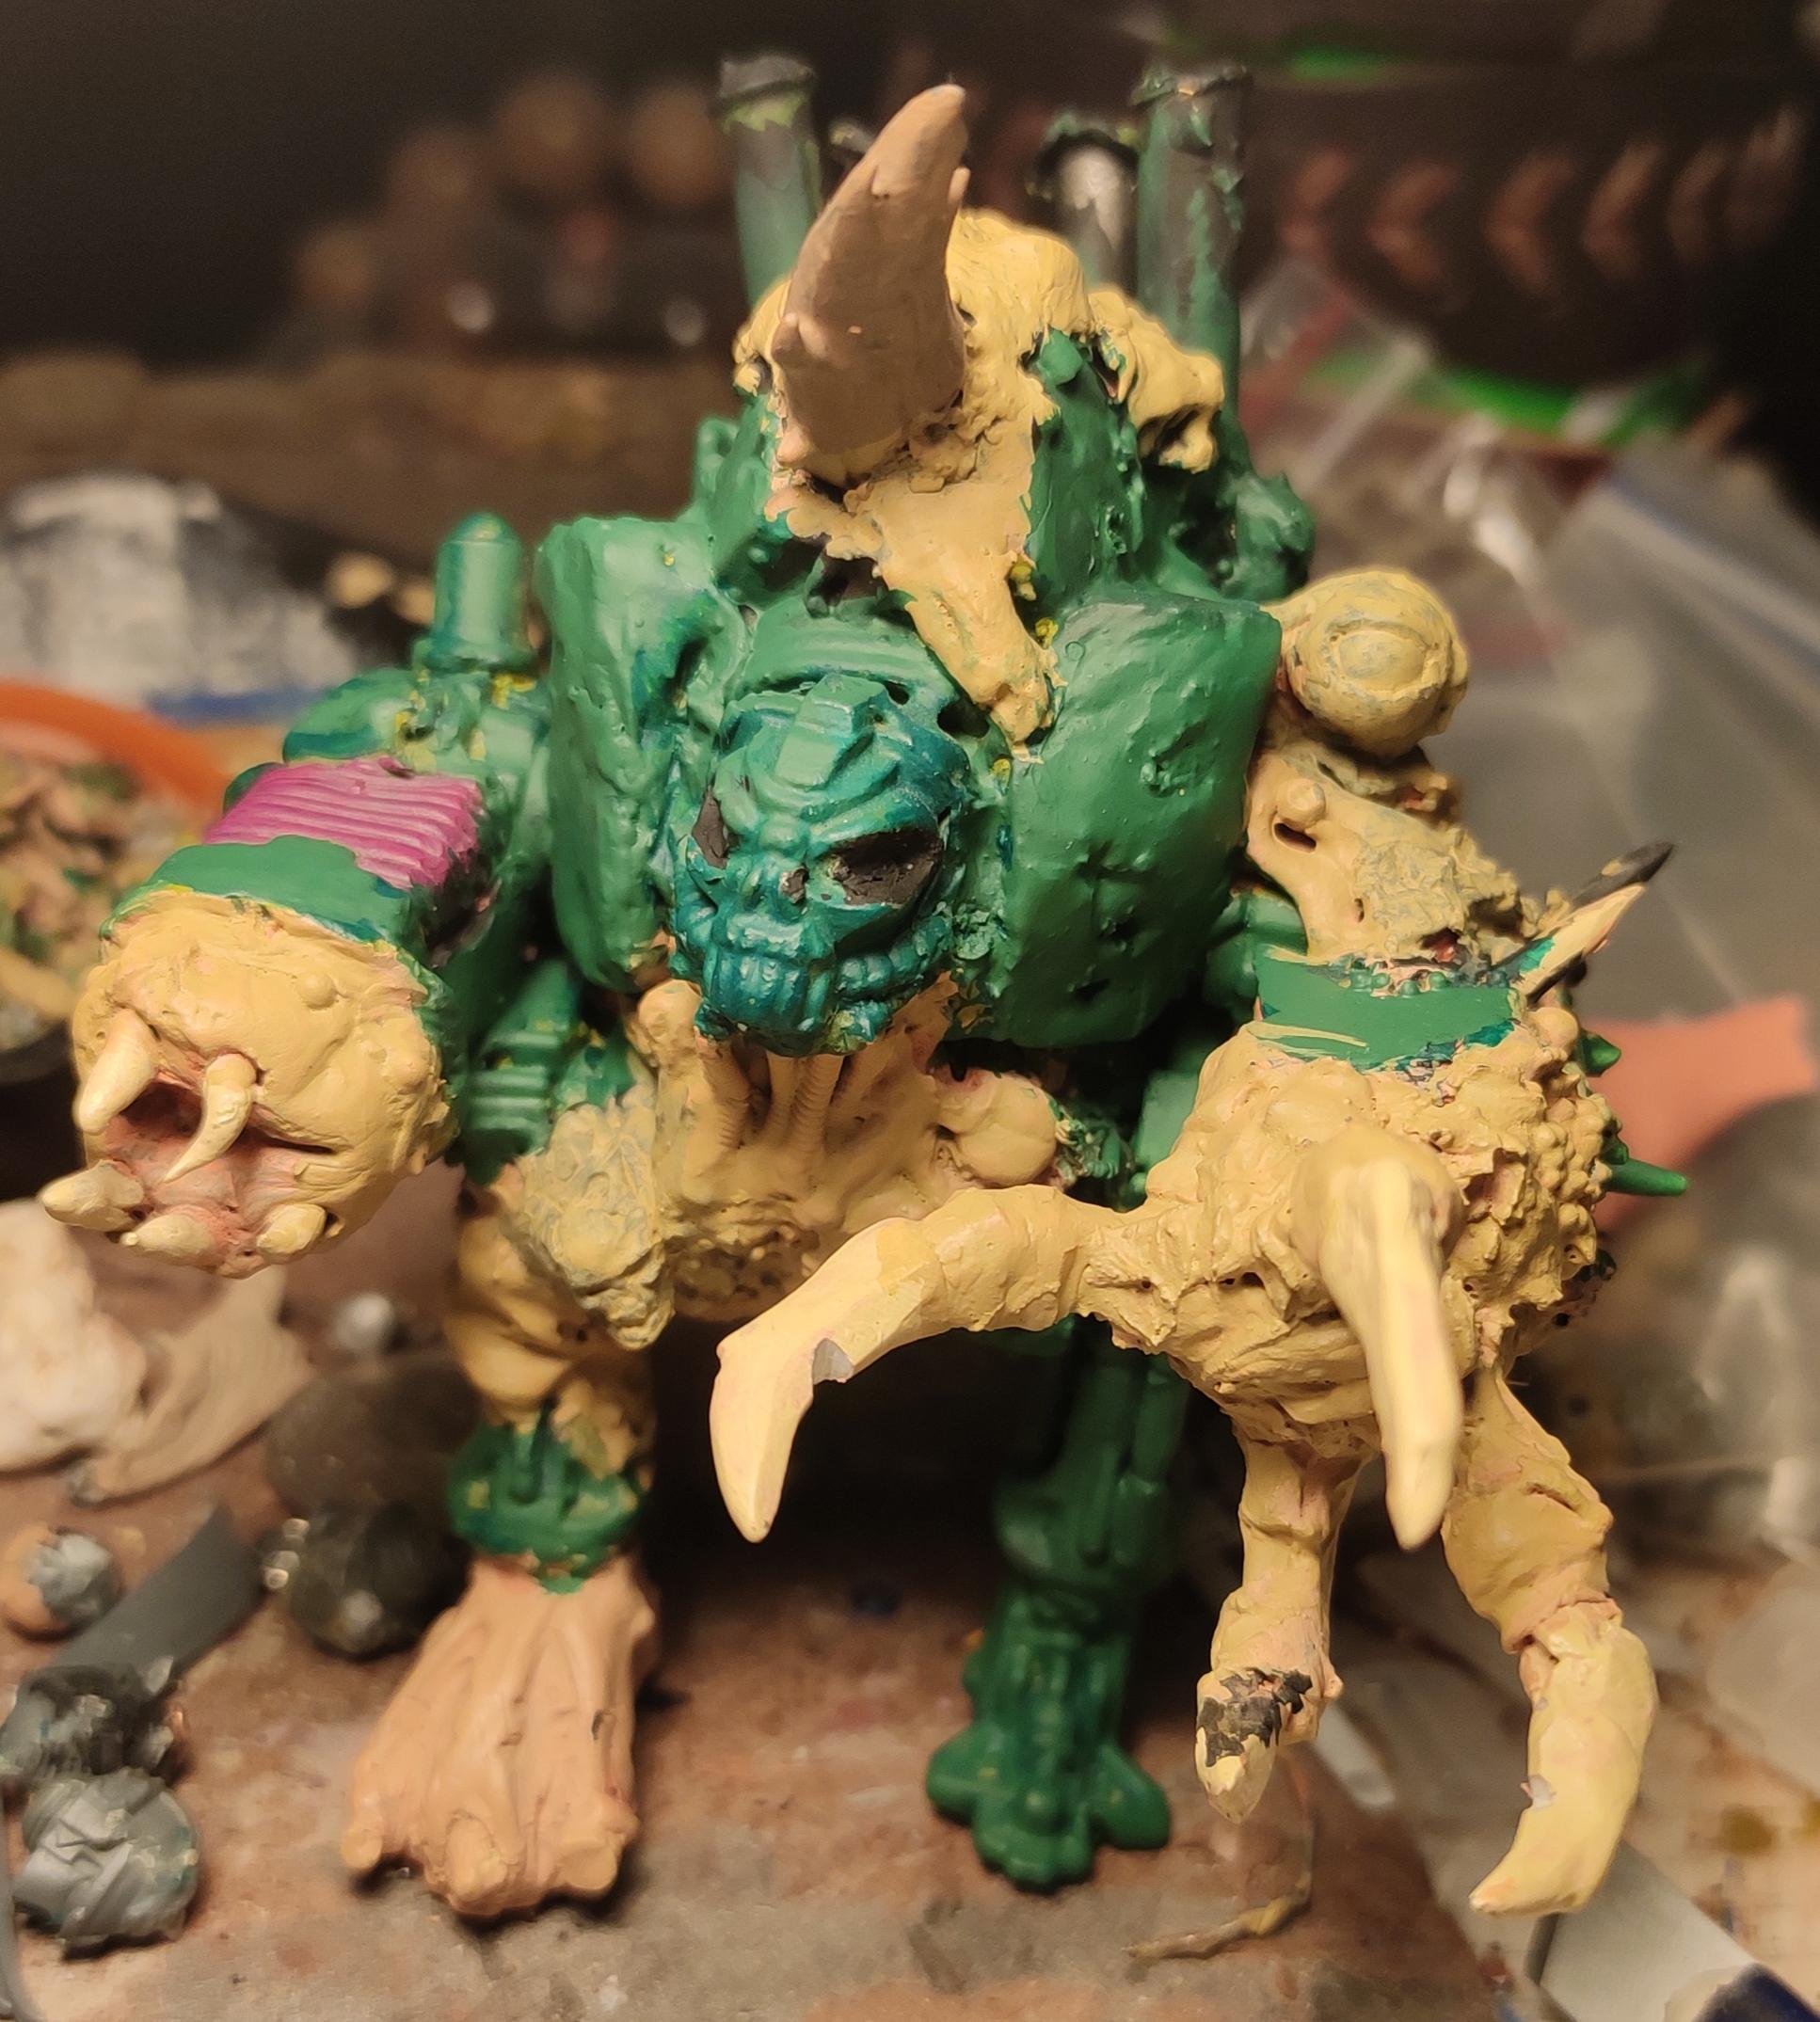 Blight, Chaos, Chaos Space Marines, Claw, Conversion, Death Guard, Decay, Disease, Dreadnought, Eye, Heavy Support, Helbrute, Hell Brute, Heretic Astartes, Nurgle, Pestilence, Plague, Plague Marines, Plasma, Rot, Scratch Build, Sculpting, Tehnolog, Traitor Legions, Warhammer 40,000, Work In Progress